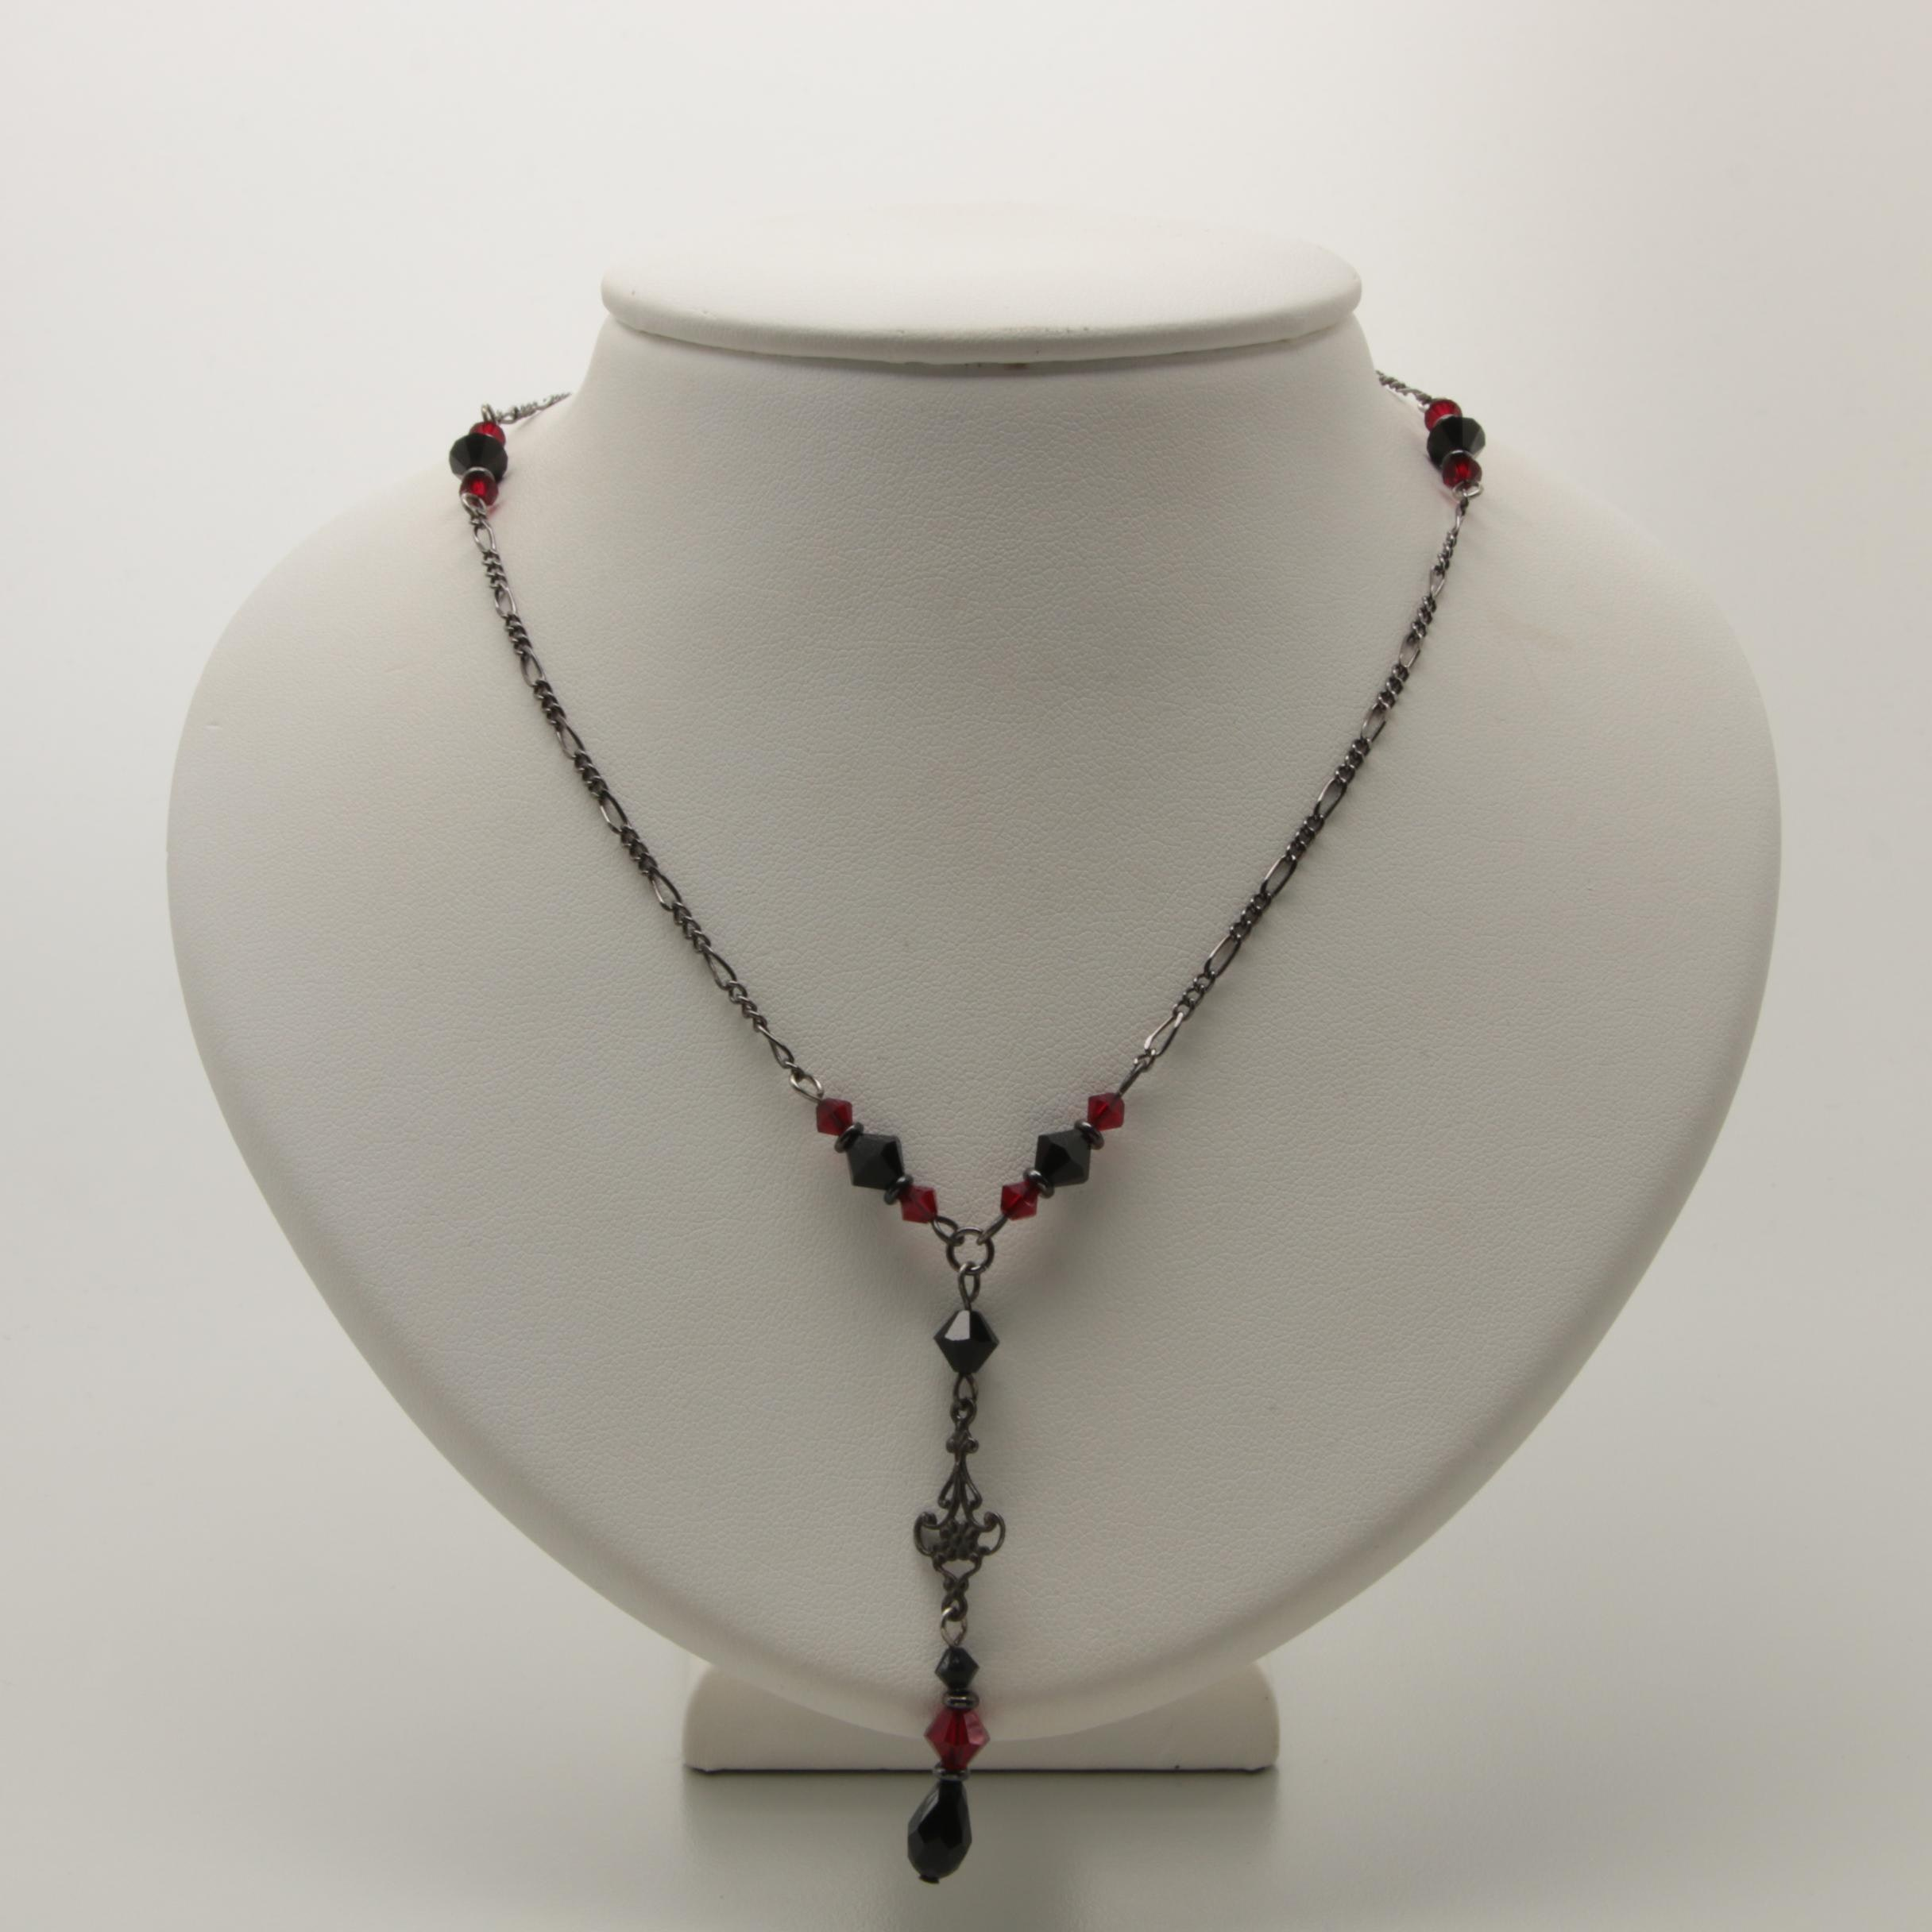 Oxidized Silver Tone Glass Beaded Necklace